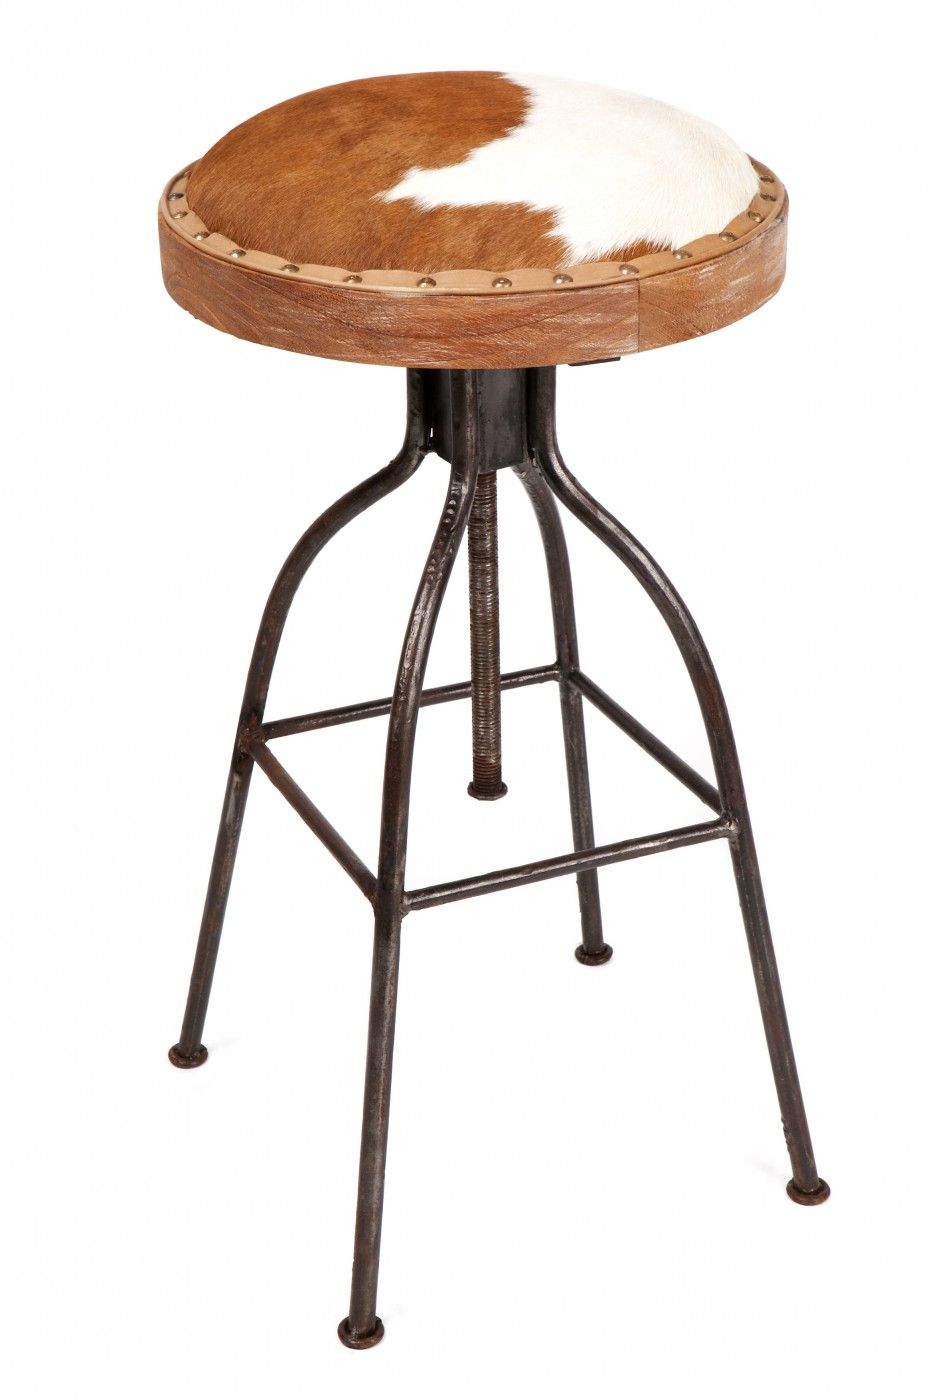 Jefferson cowhide barstool brownwhite%20copy | building/creating ...